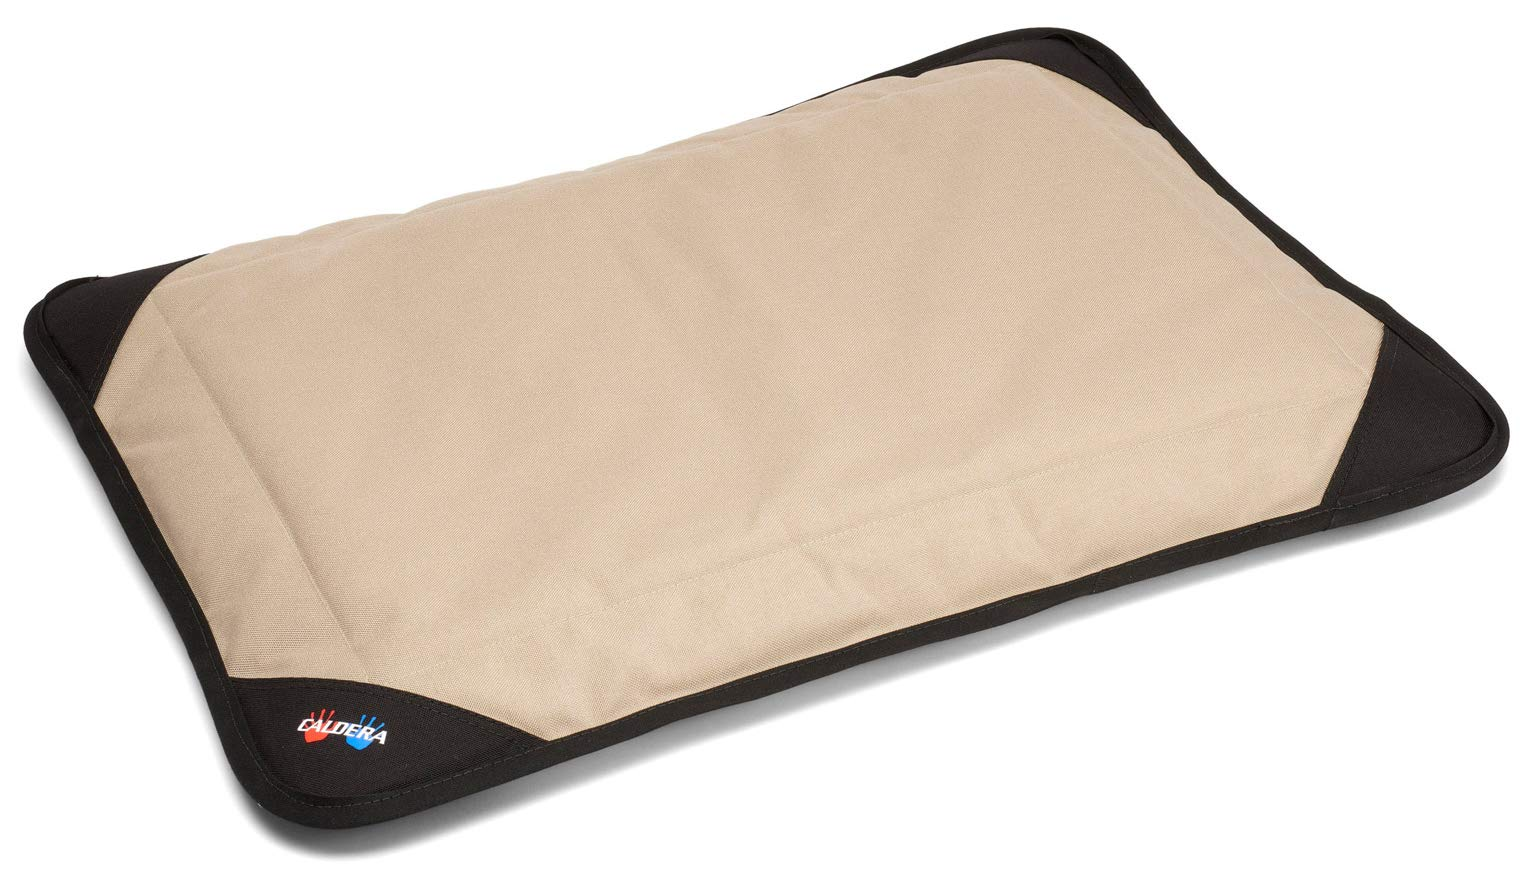 CALDERA Medium Pet Bed - Hot & Cold Pet Bed That Provides Both Cool or Hot Relief To Your Pet (Color Tan - Size MEDIUM: 22'' x 30'') by Caldera